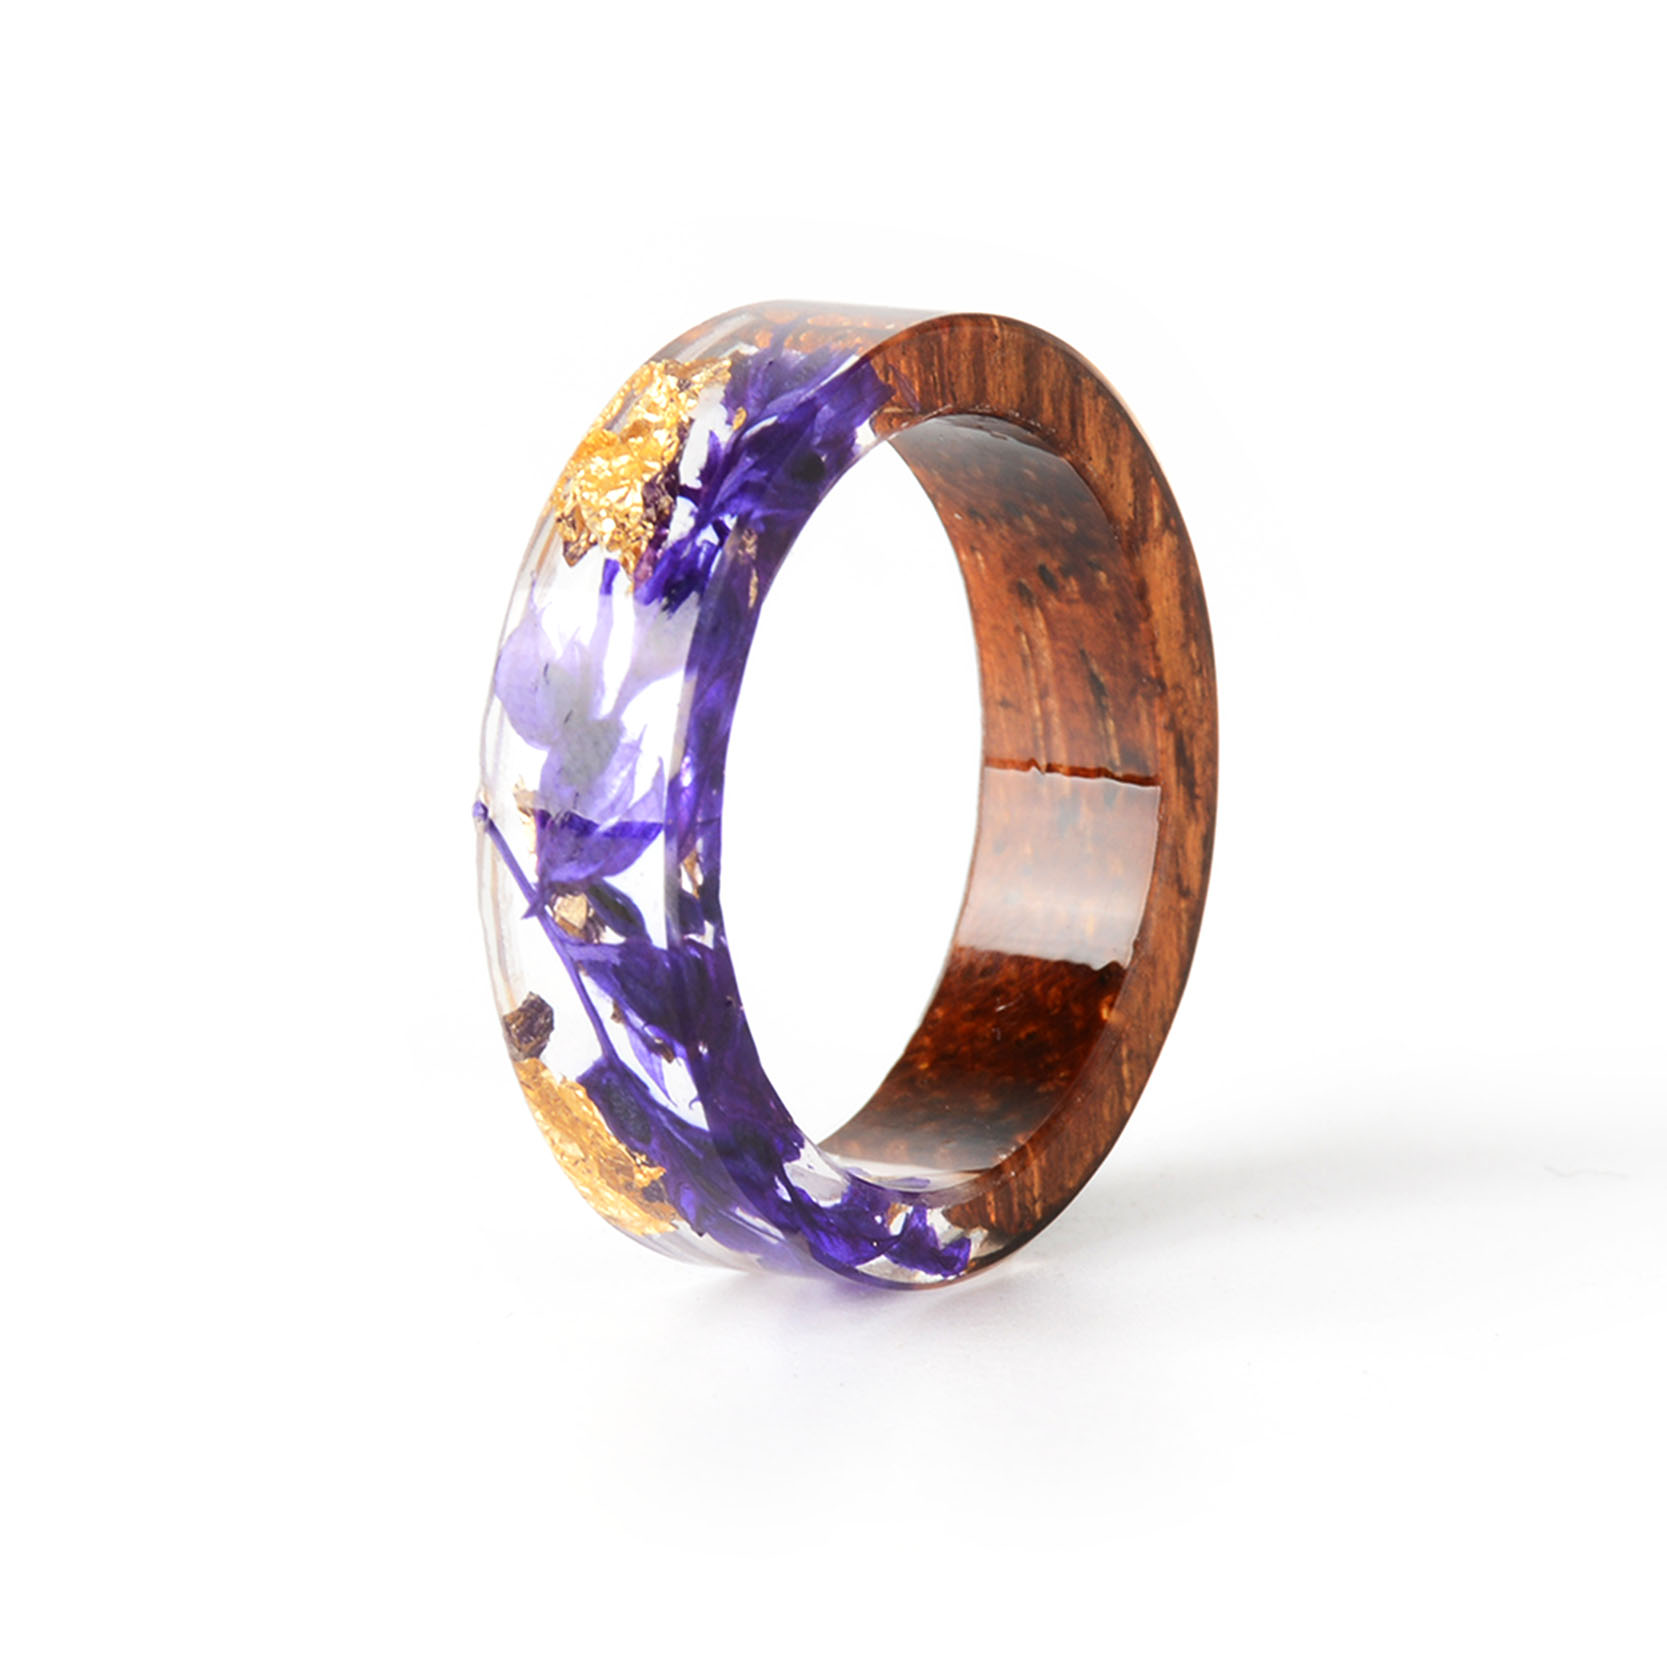 HTB1updDB5CYBuNkSnaVq6AMsVXaJ - Hot Sale Handmade Wood Resin Ring Dried Flowers Plants Inside Jewelry Resin Ring Transparent Anniversary Ring for Women